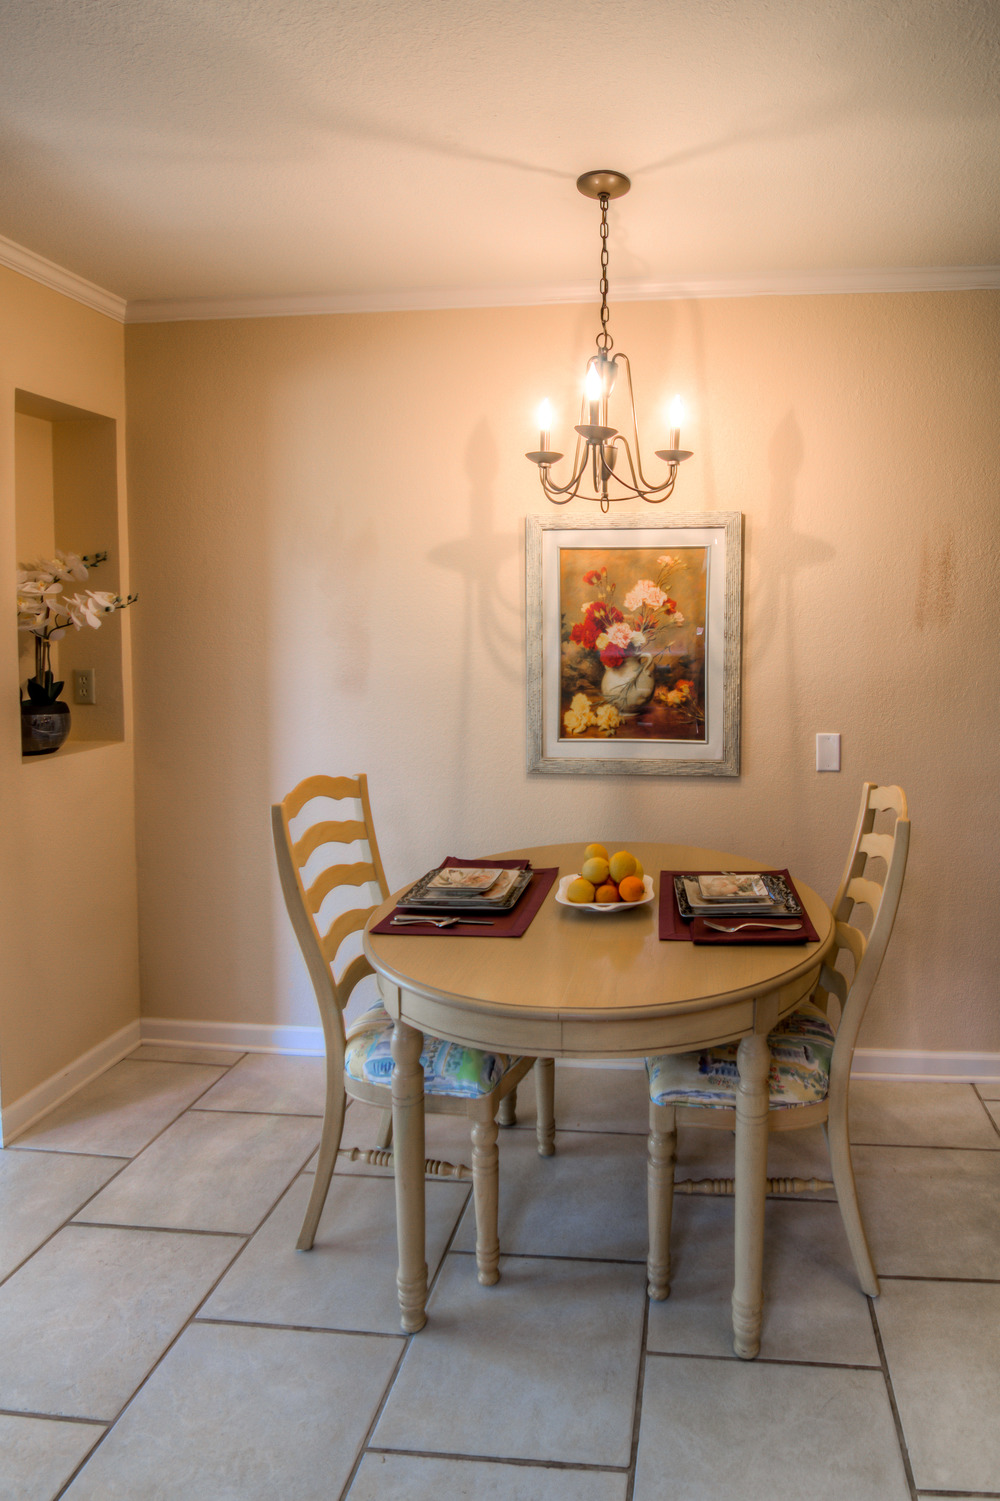 18 Breakfast Nook photo a.jpg